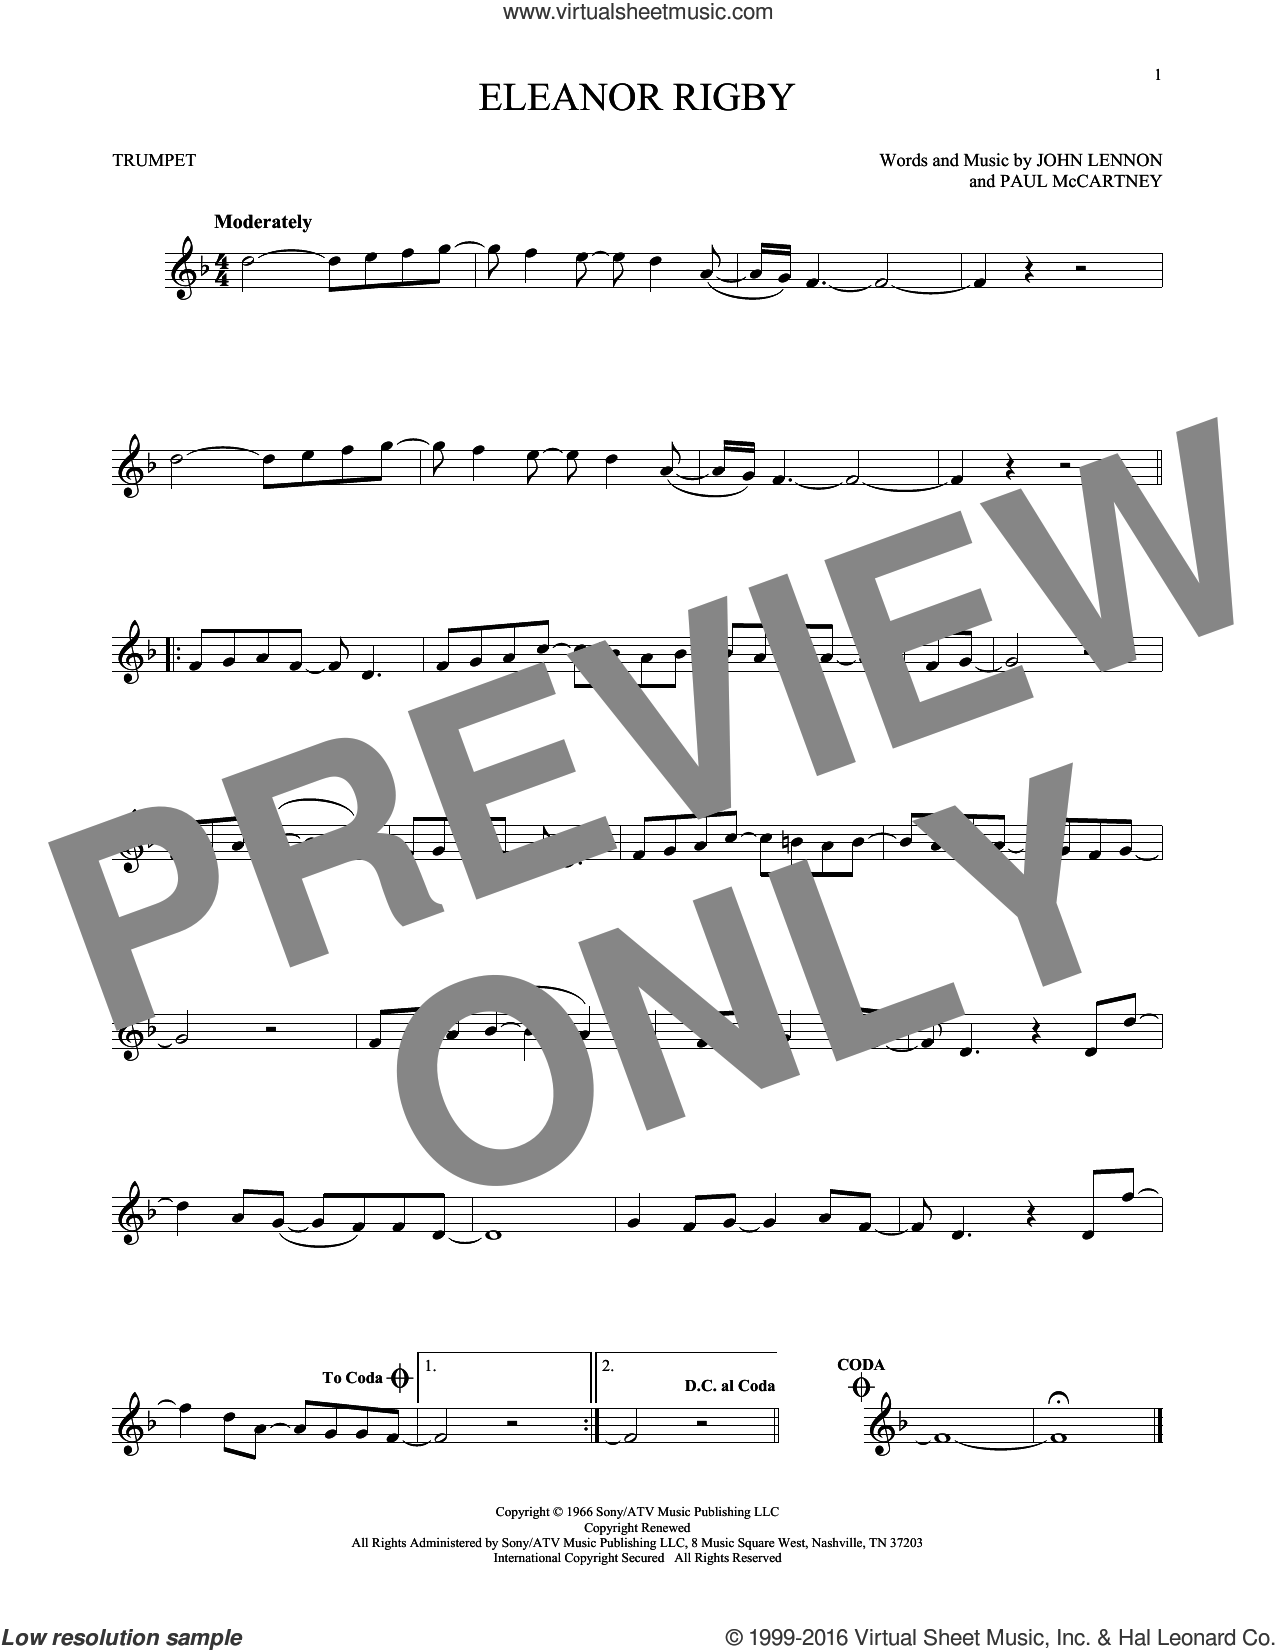 Eleanor Rigby sheet music for trumpet solo by The Beatles, David Cook, John Lennon and Paul McCartney, intermediate skill level